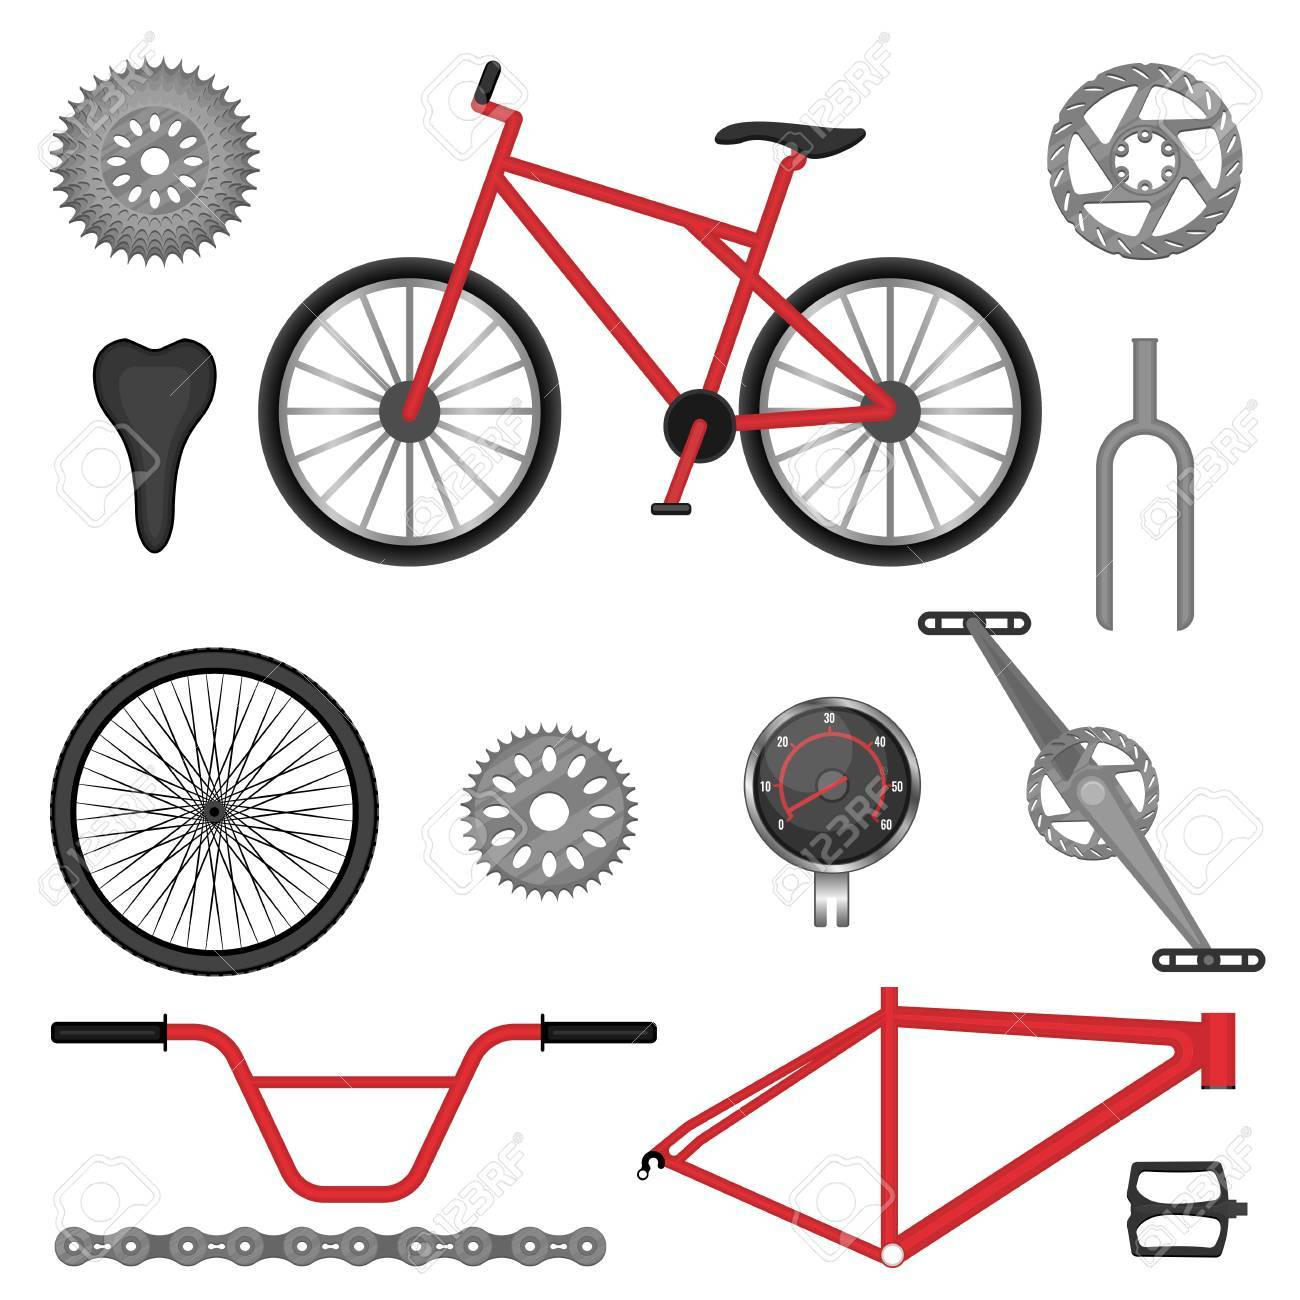 Parts Of Bmx Bike Off Road Sport Bicycle Used For Racing And